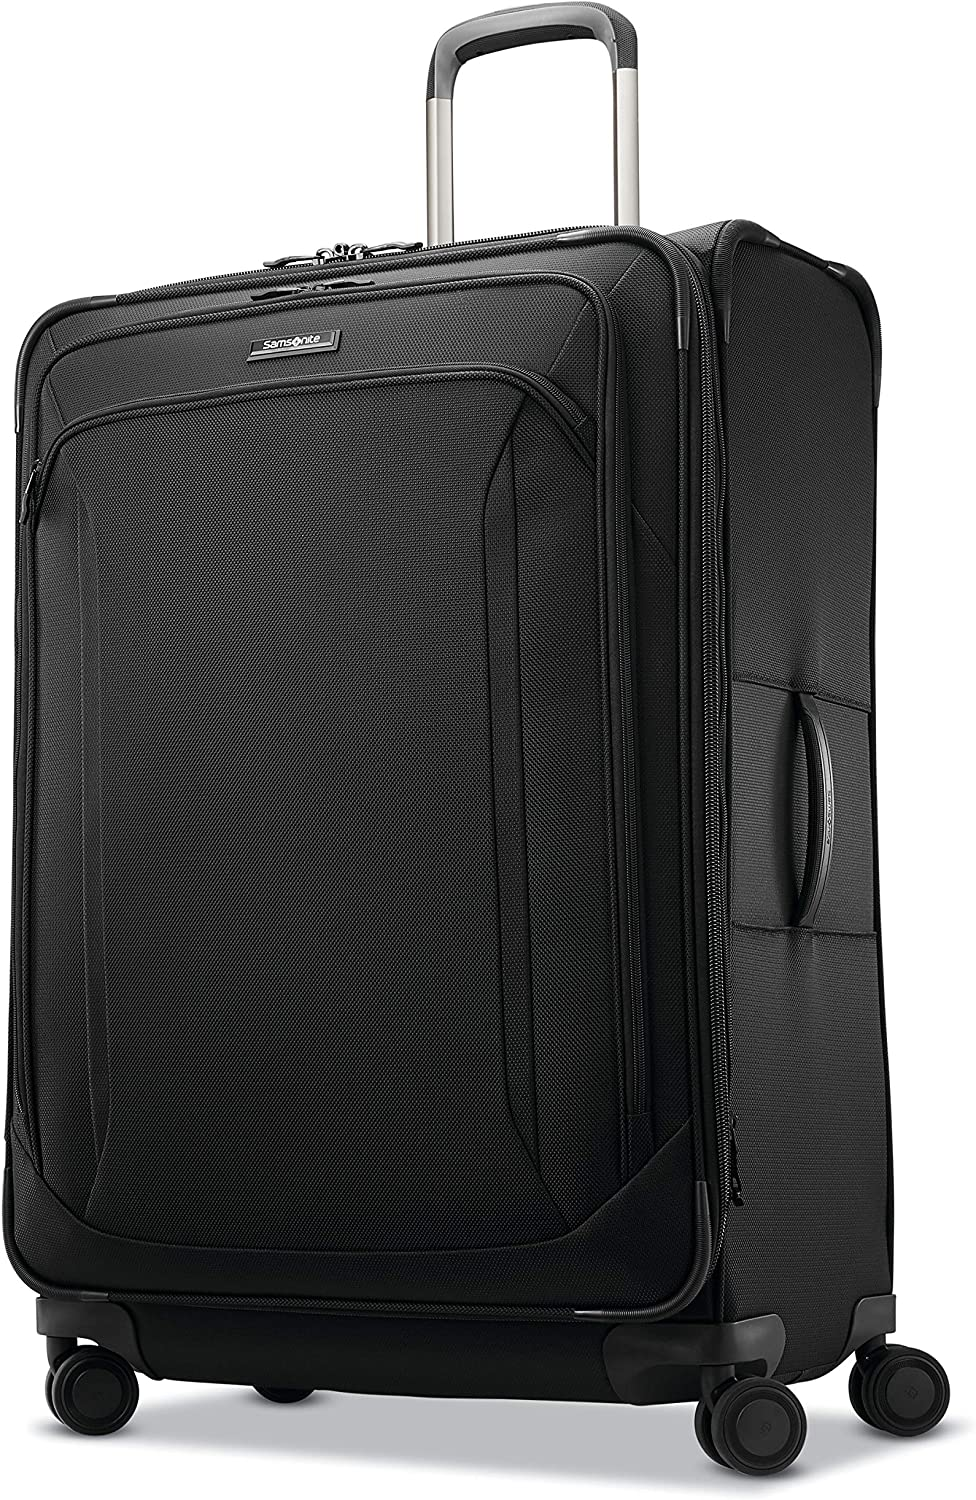 Samsonite Lineate Softside Expandable Luggage with Spinner Wheels, Obsidian Black, Checked-Large 29-Inch